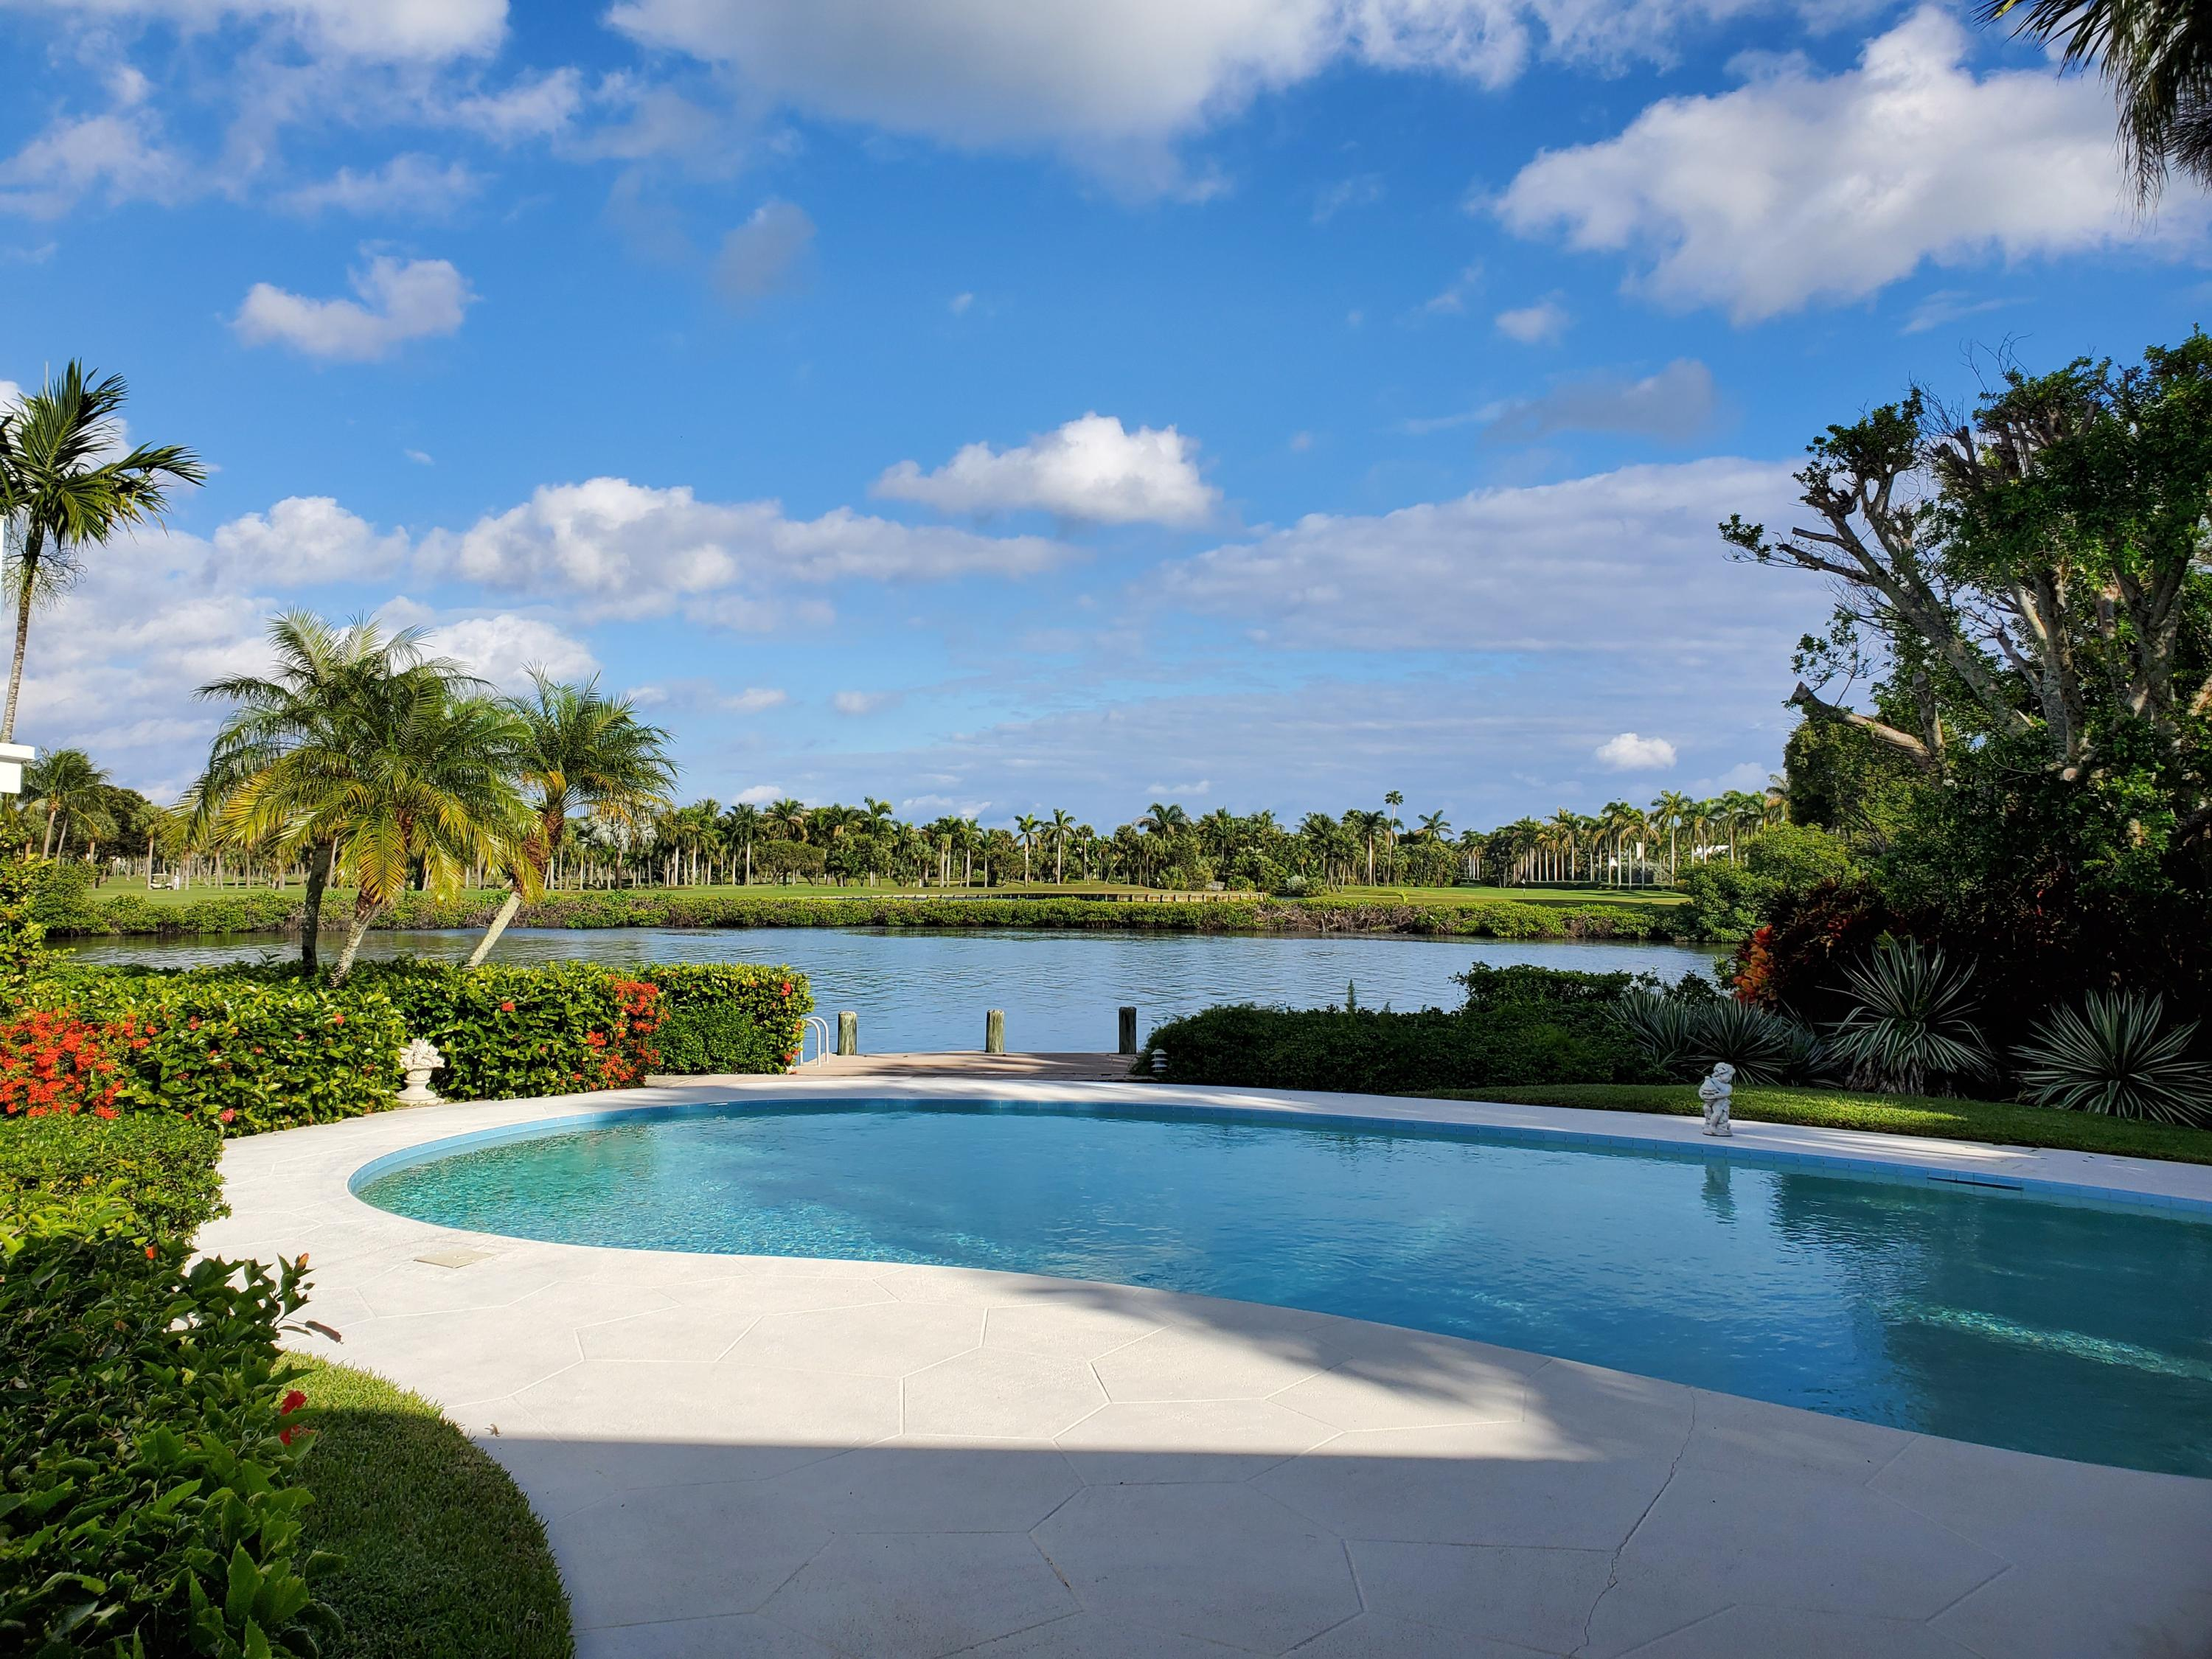 New Home for sale at 584 Island Drive in Palm Beach